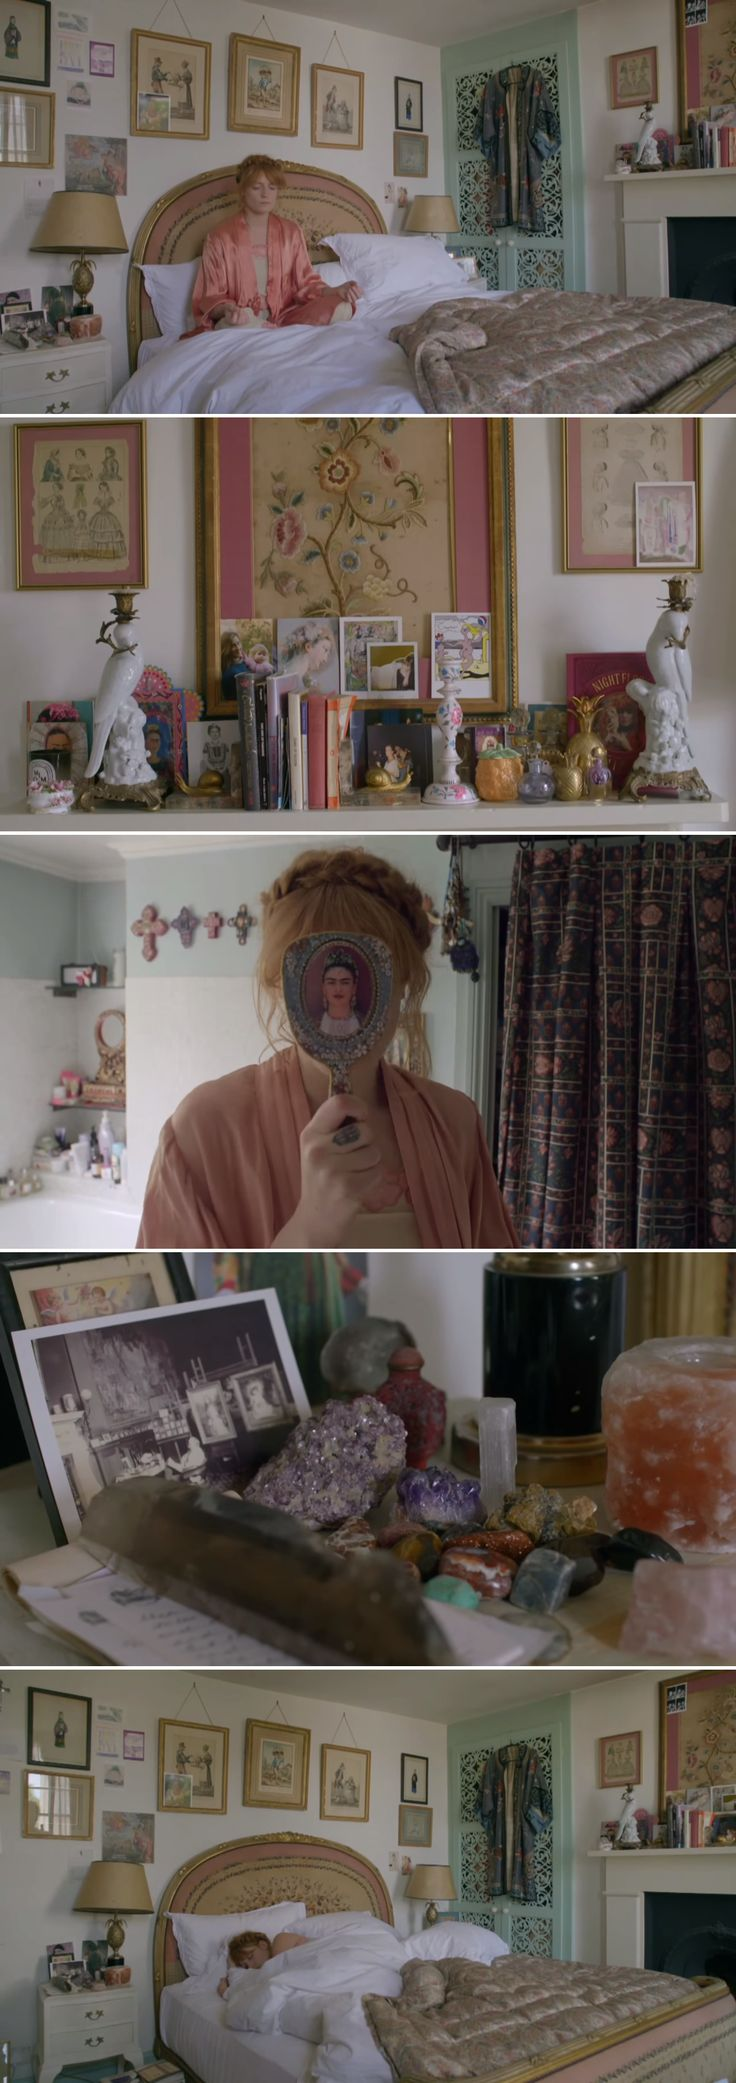 Inside Florence Welch's home - via NOWNESS